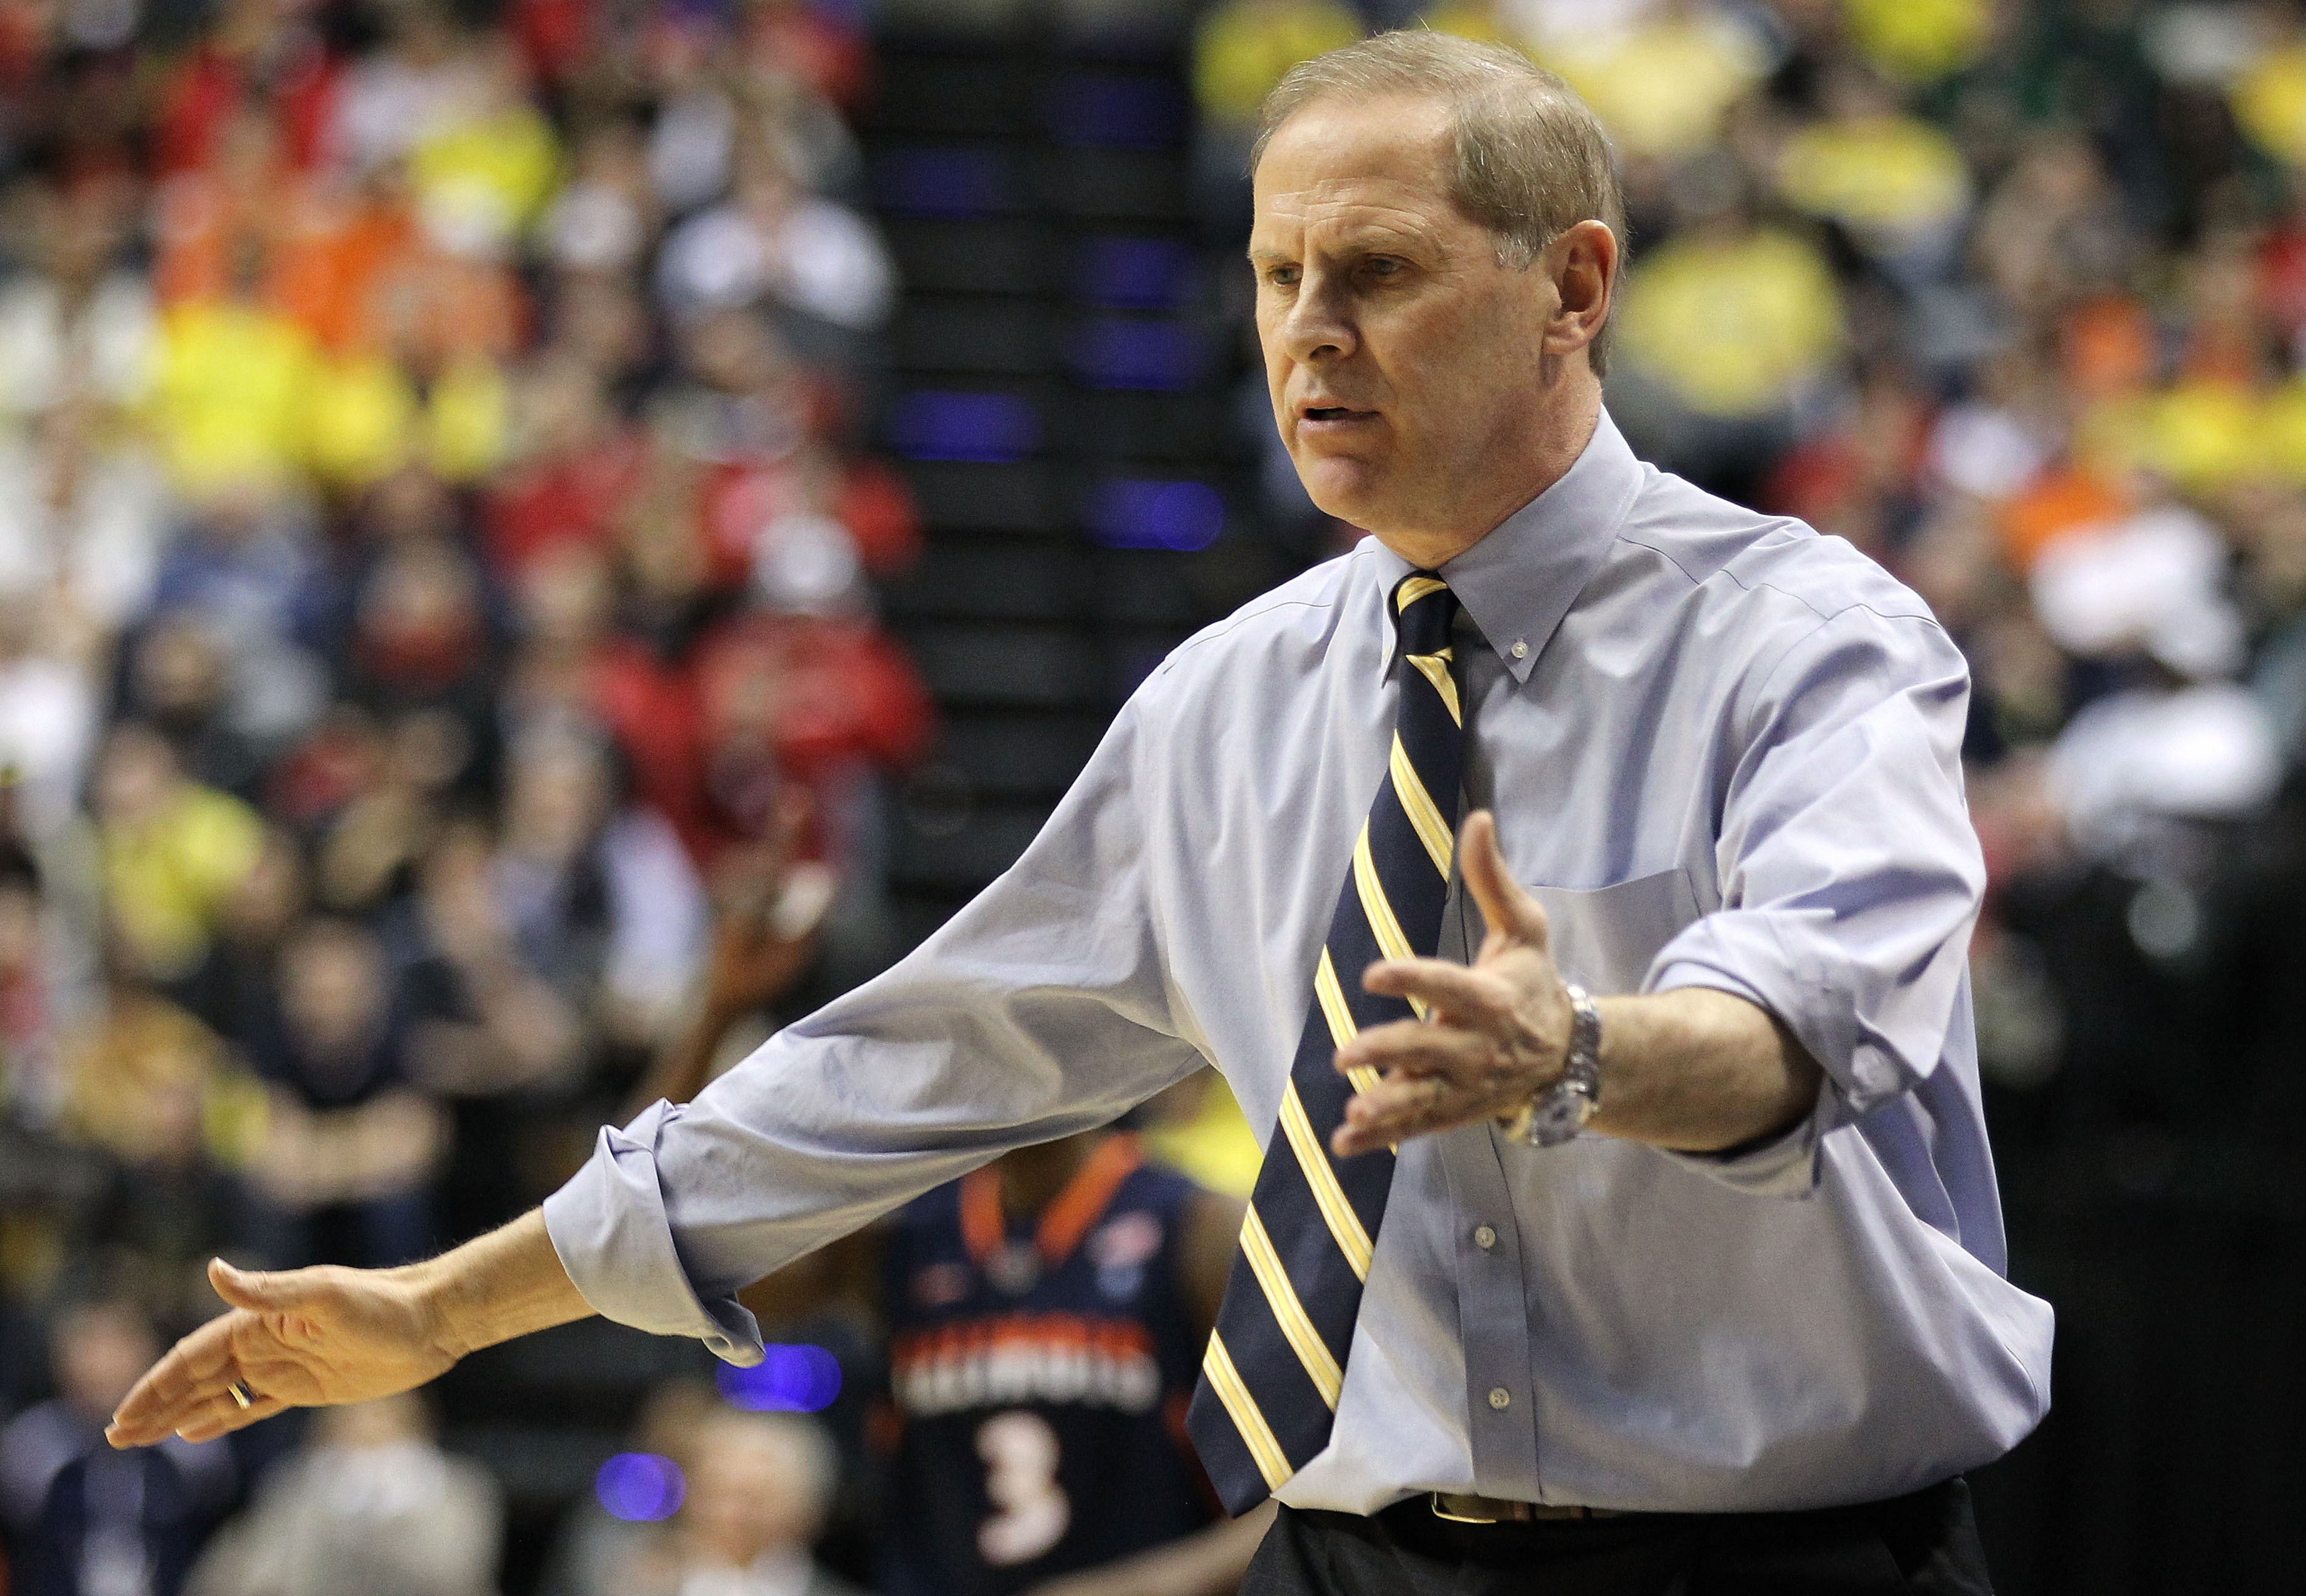 INDIANAPOLIS, IN - MARCH 11:  Head coach John Beilein of the Michigan Wolverines reacts against the Illinois Fighting Illini during the quarterfinals of the 2011 Big Ten Men's Basketball Tournament at Conseco Fieldhouse on March 11, 2011 in Indianapolis,